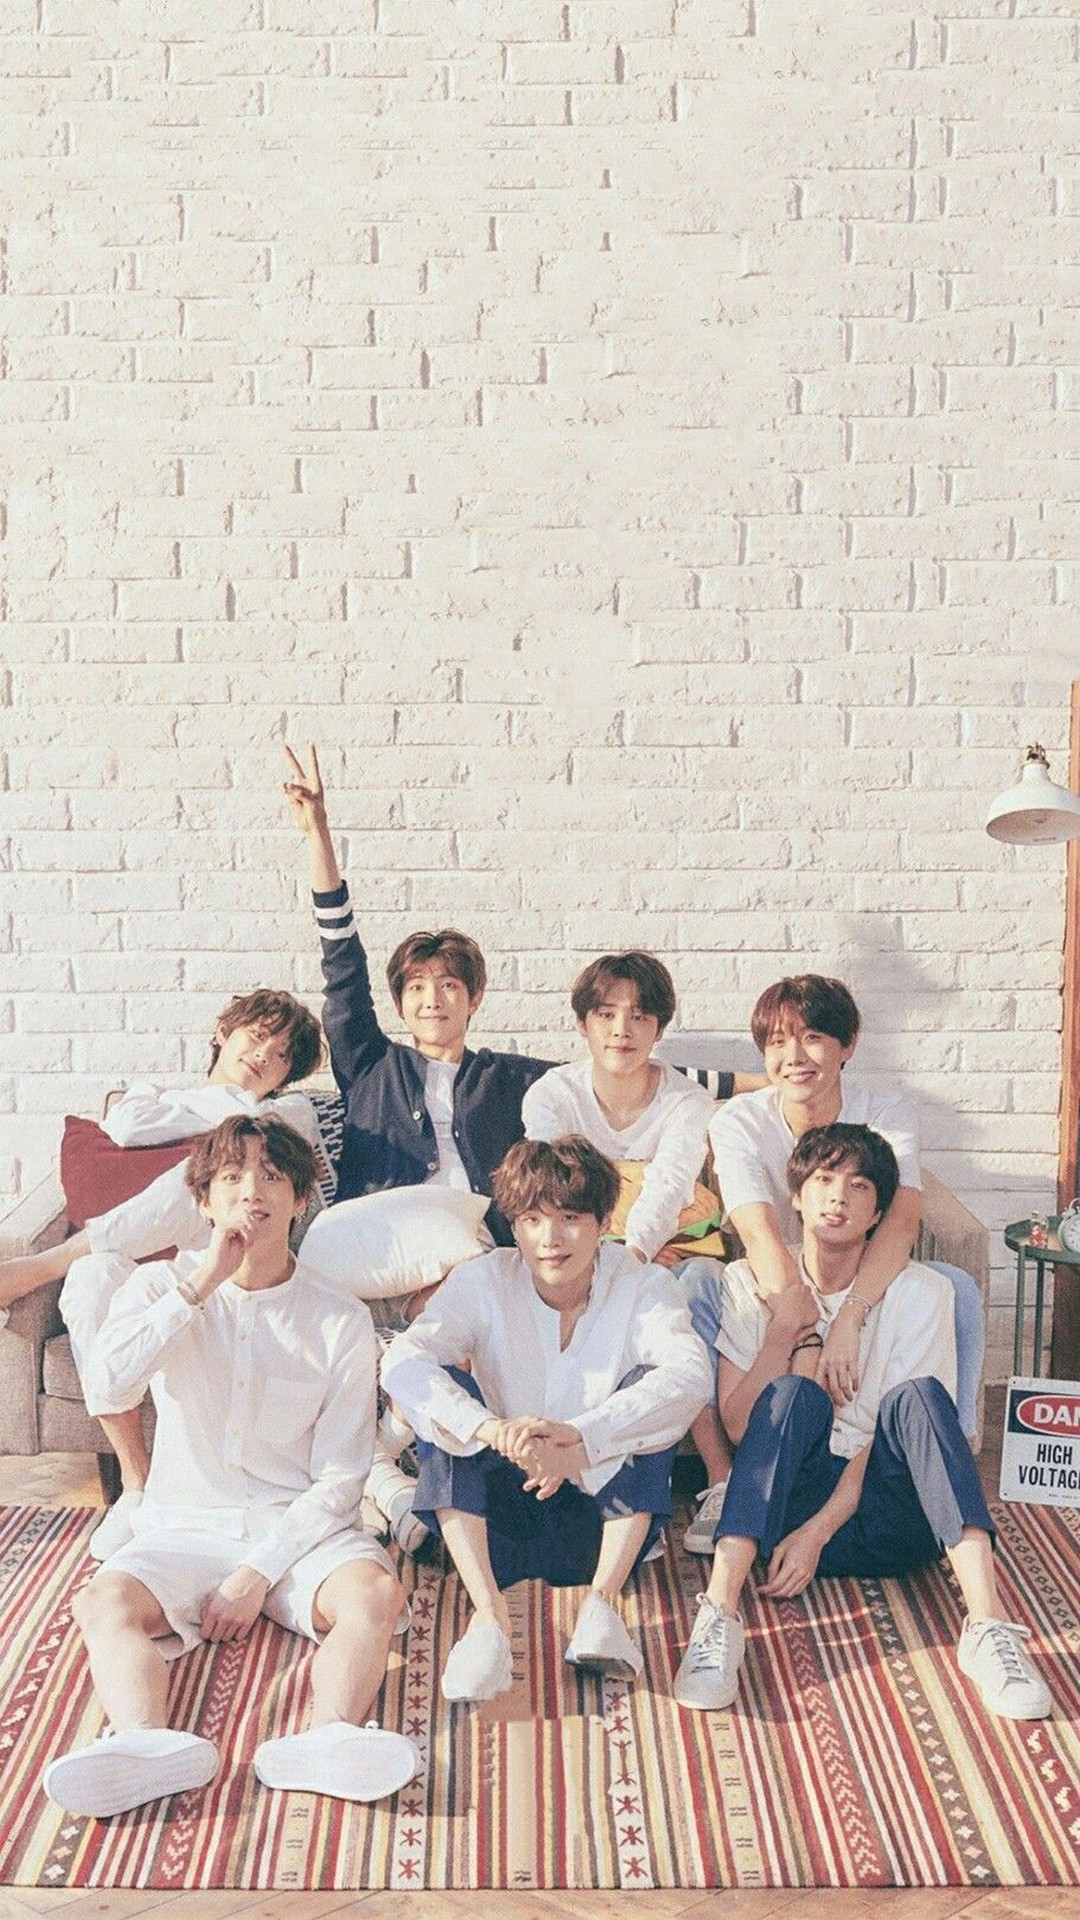 BTS Android Wallpaper 2019 Android Wallpapers